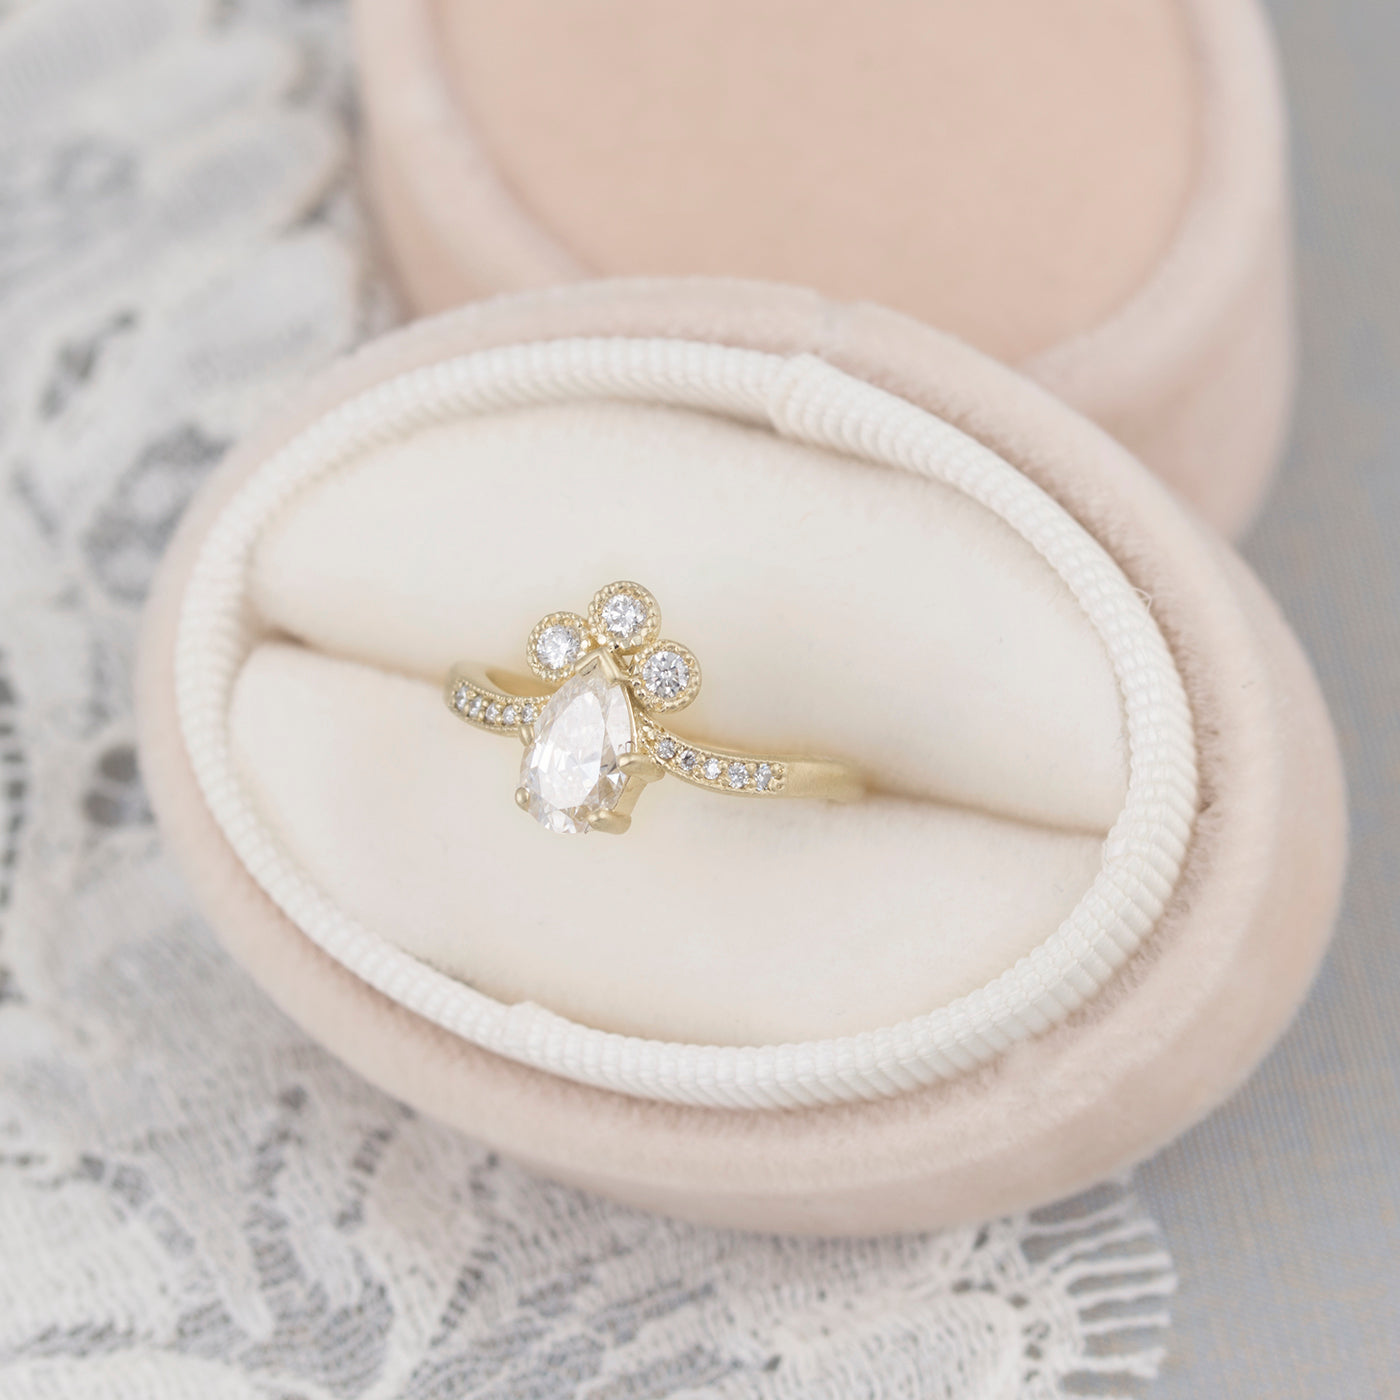 with bands diamond on pear rings wedding shaped pinterest a pin ring photos that engagement blew up